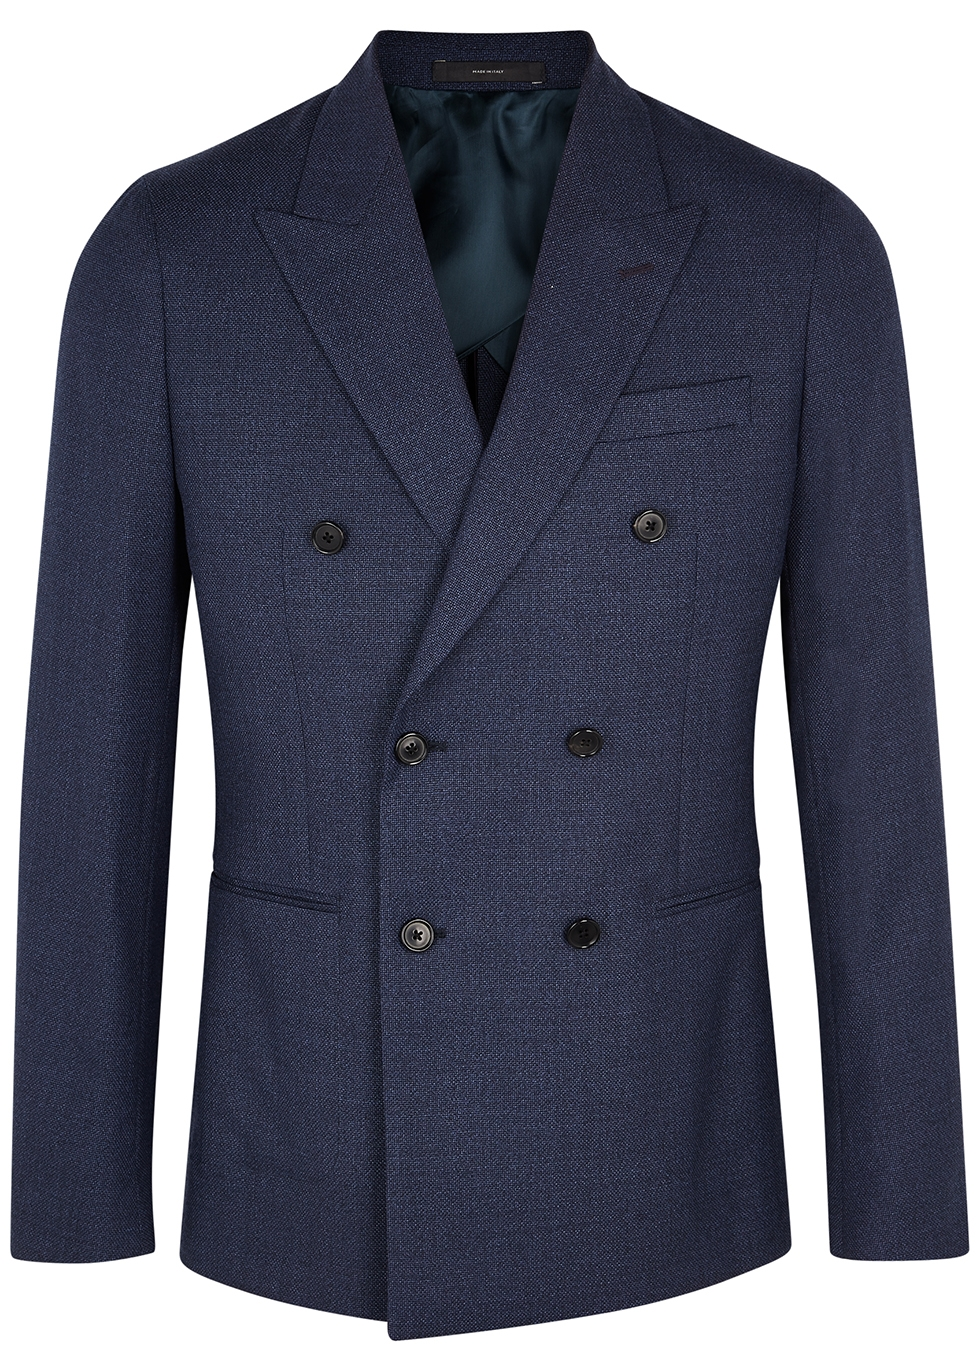 Navy double-breasted wool blazer